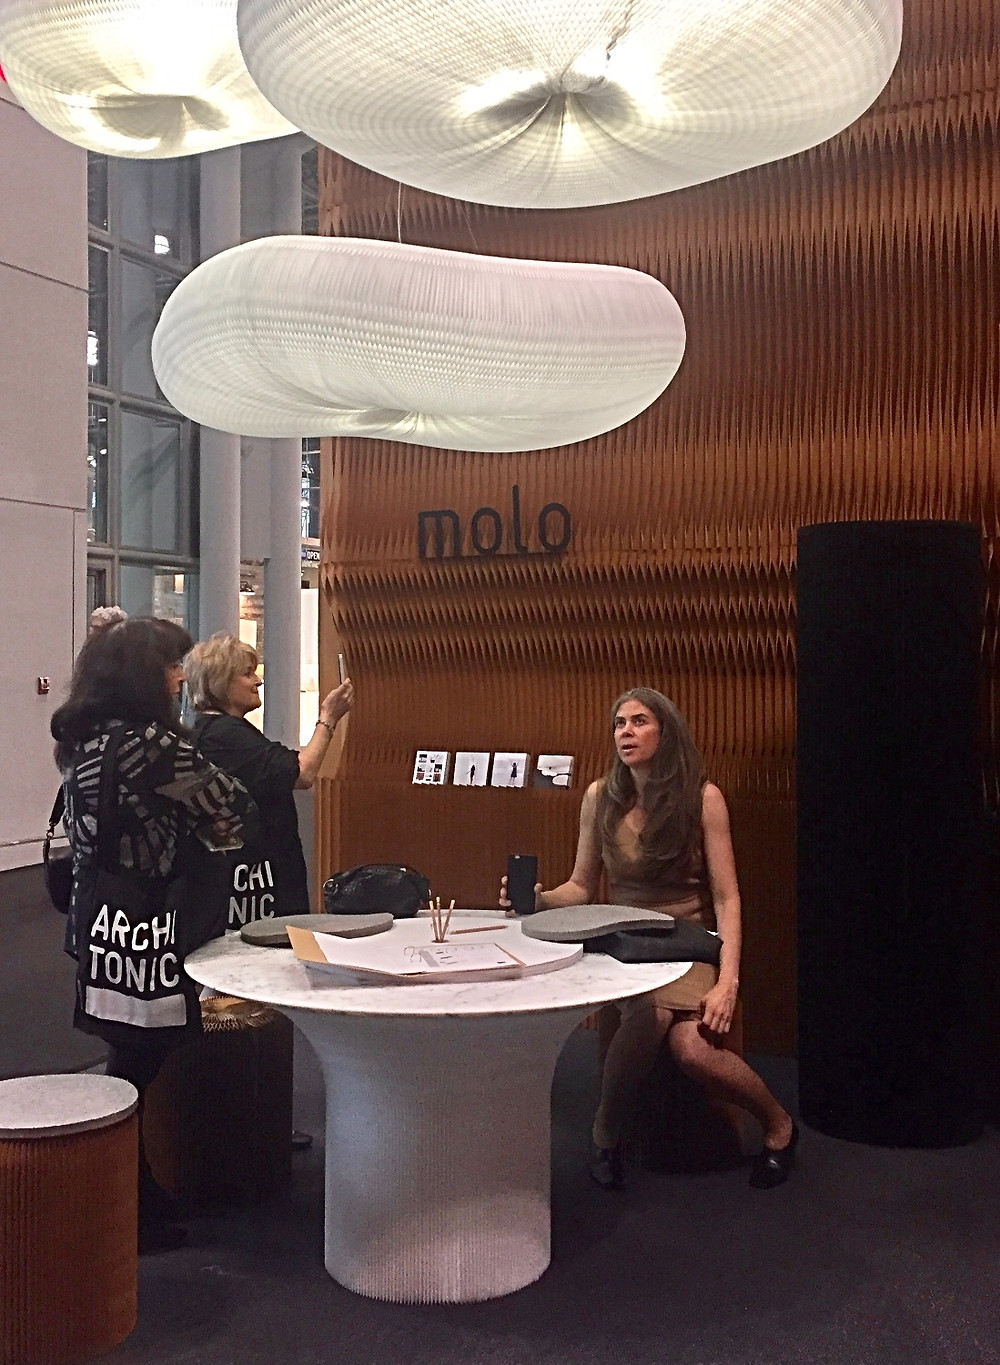 Molo design walls, tables, lighting